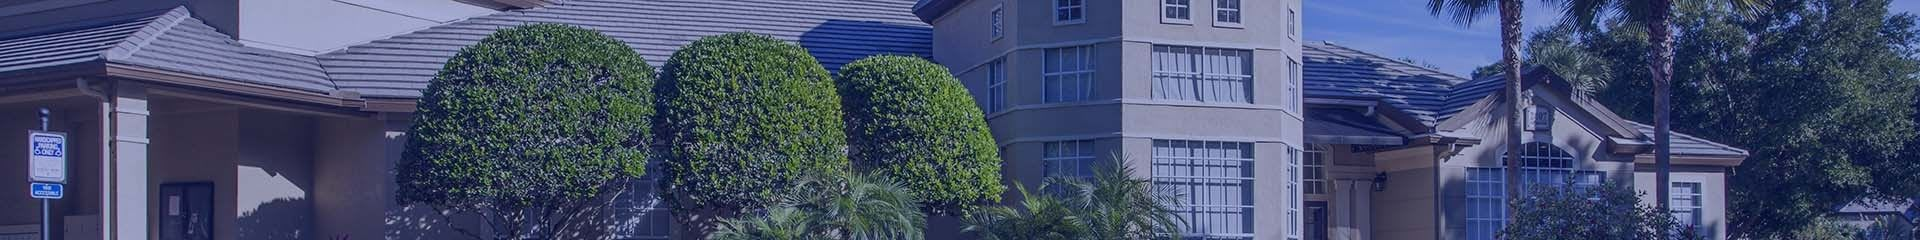 Schedule a tour to view our apartments in Orlando, FL